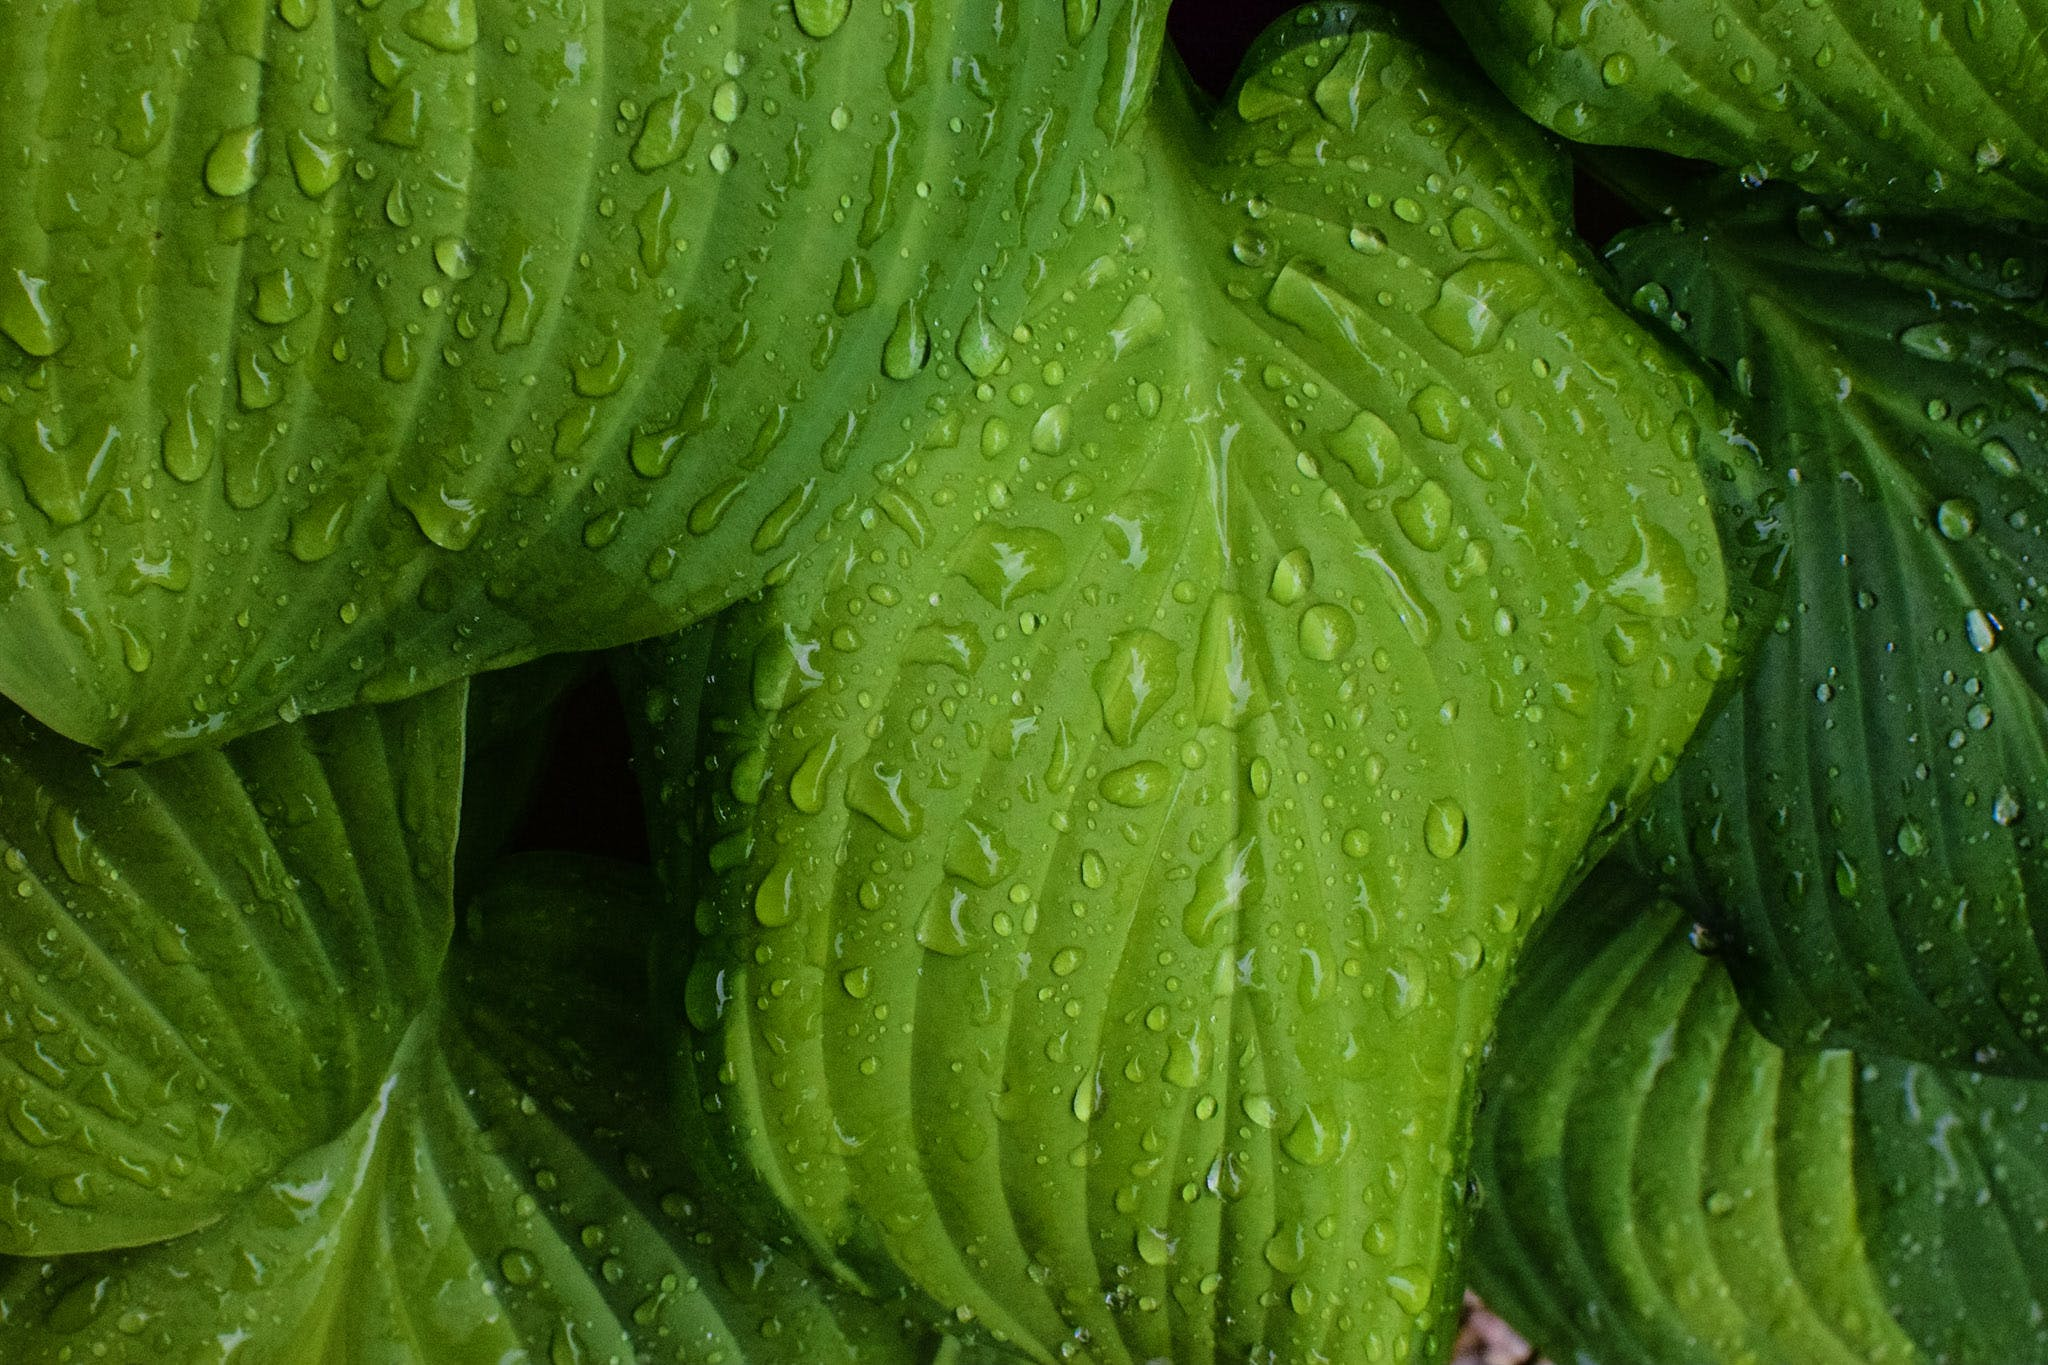 close-up, dew, green